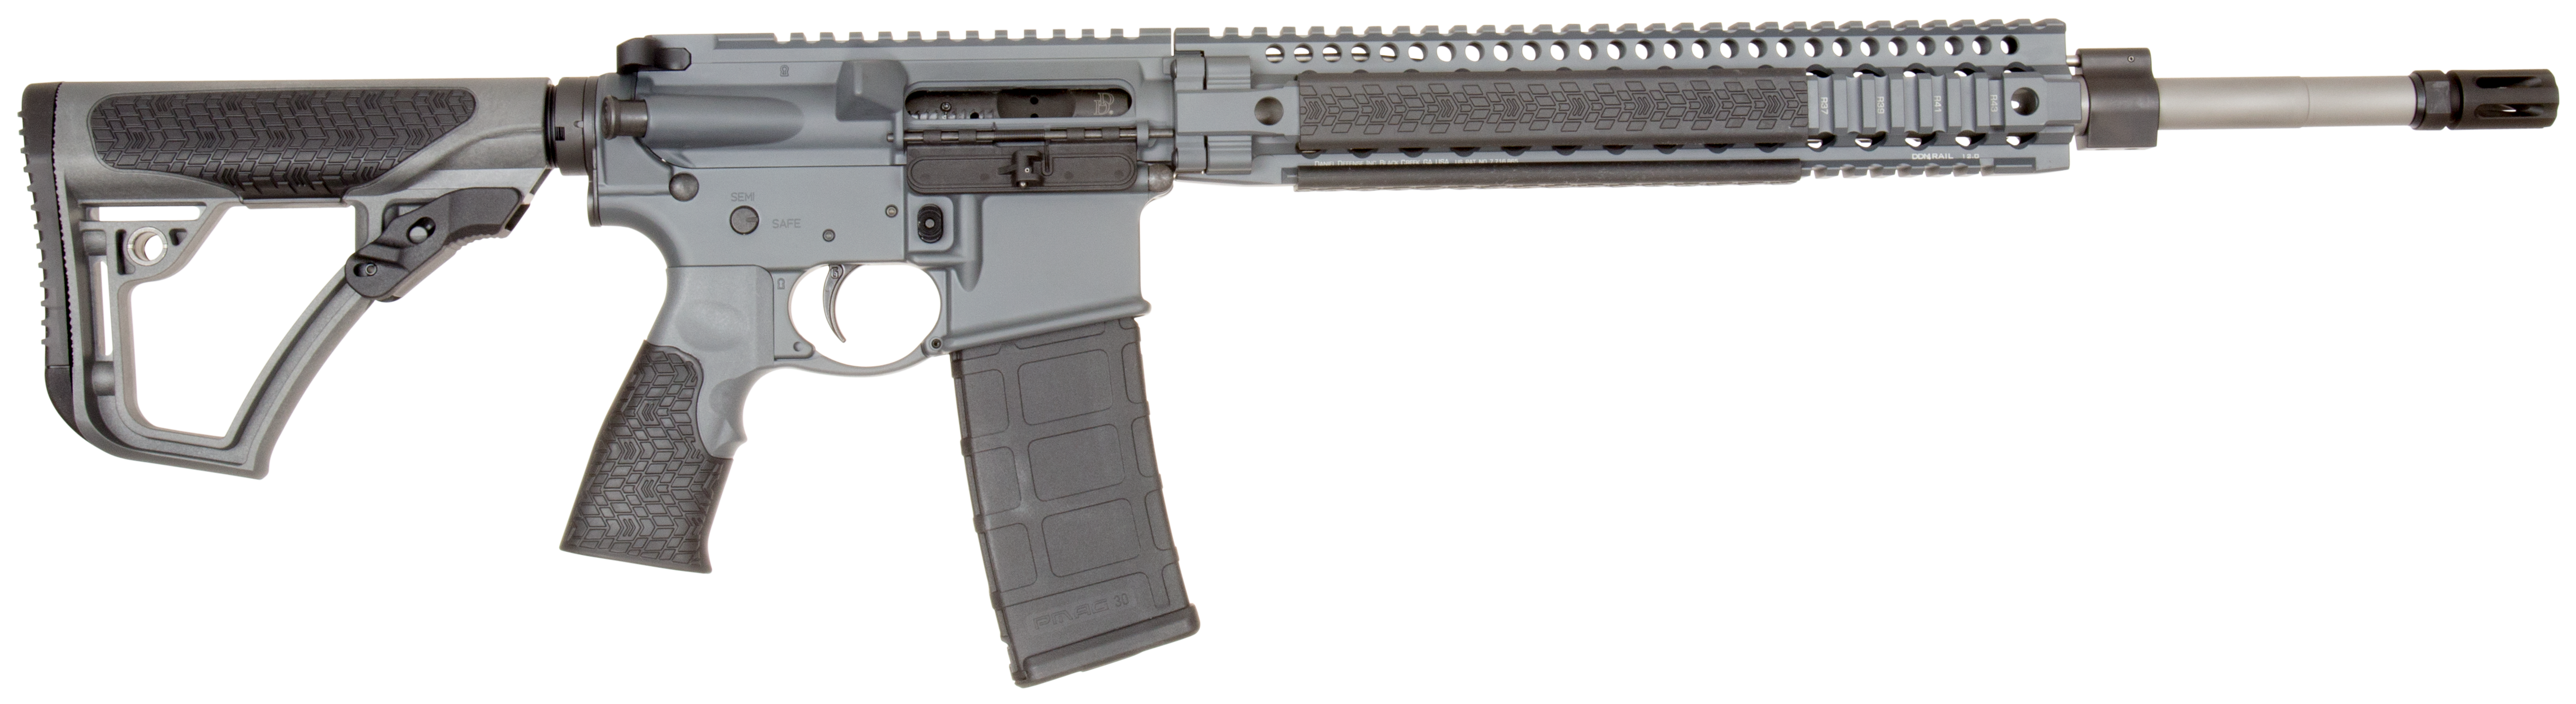 Daniel Defense 01198047 DDM4 MK12 Semi-Automatic 223 Remington/5.56 NATO 18